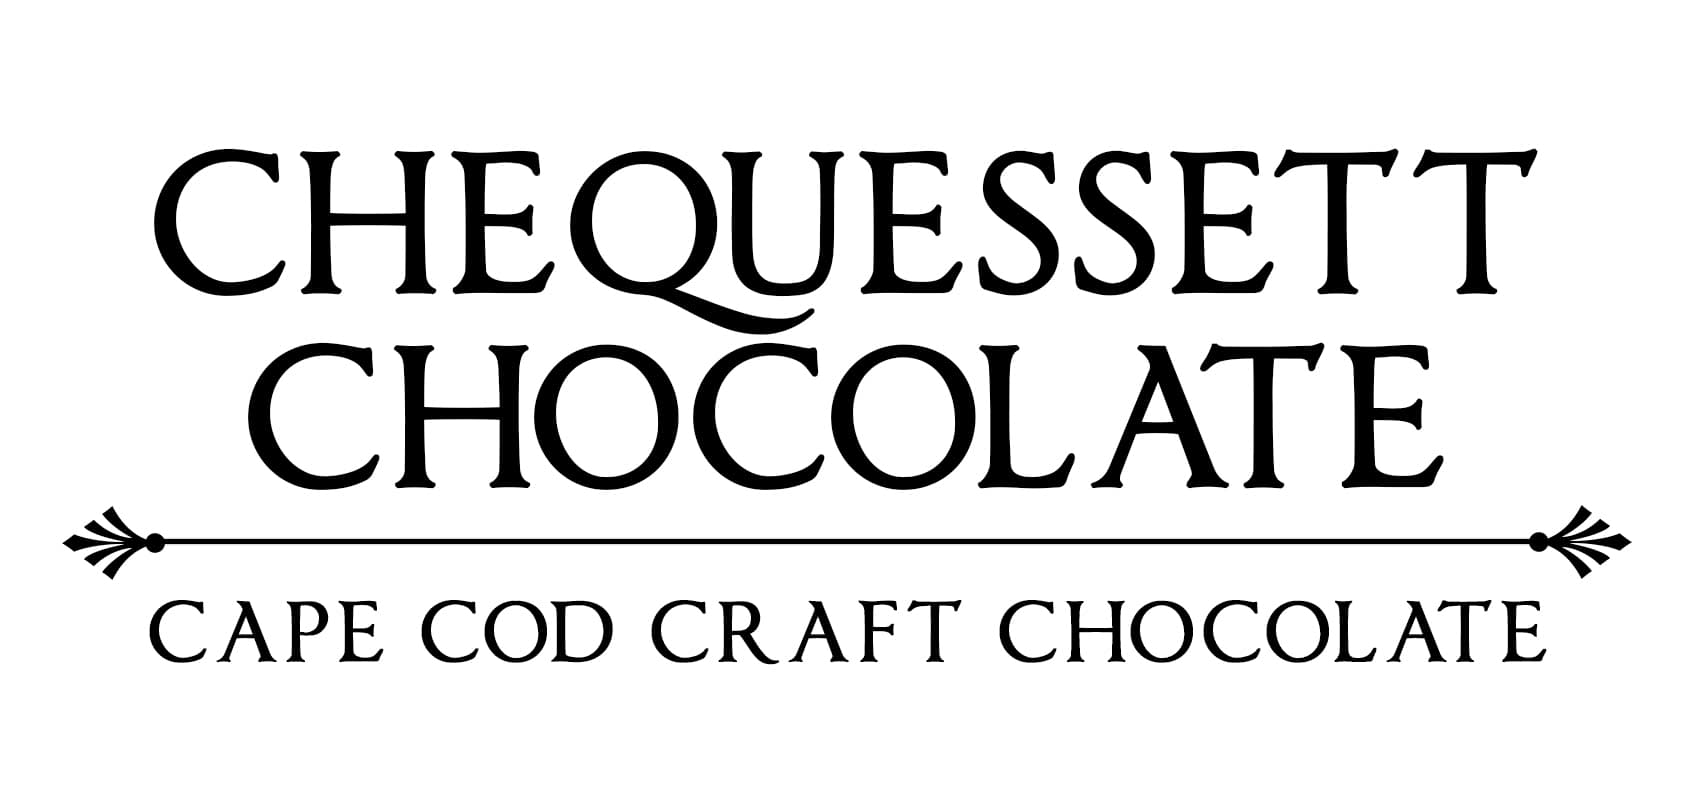 Shop Chequessett Chocolate